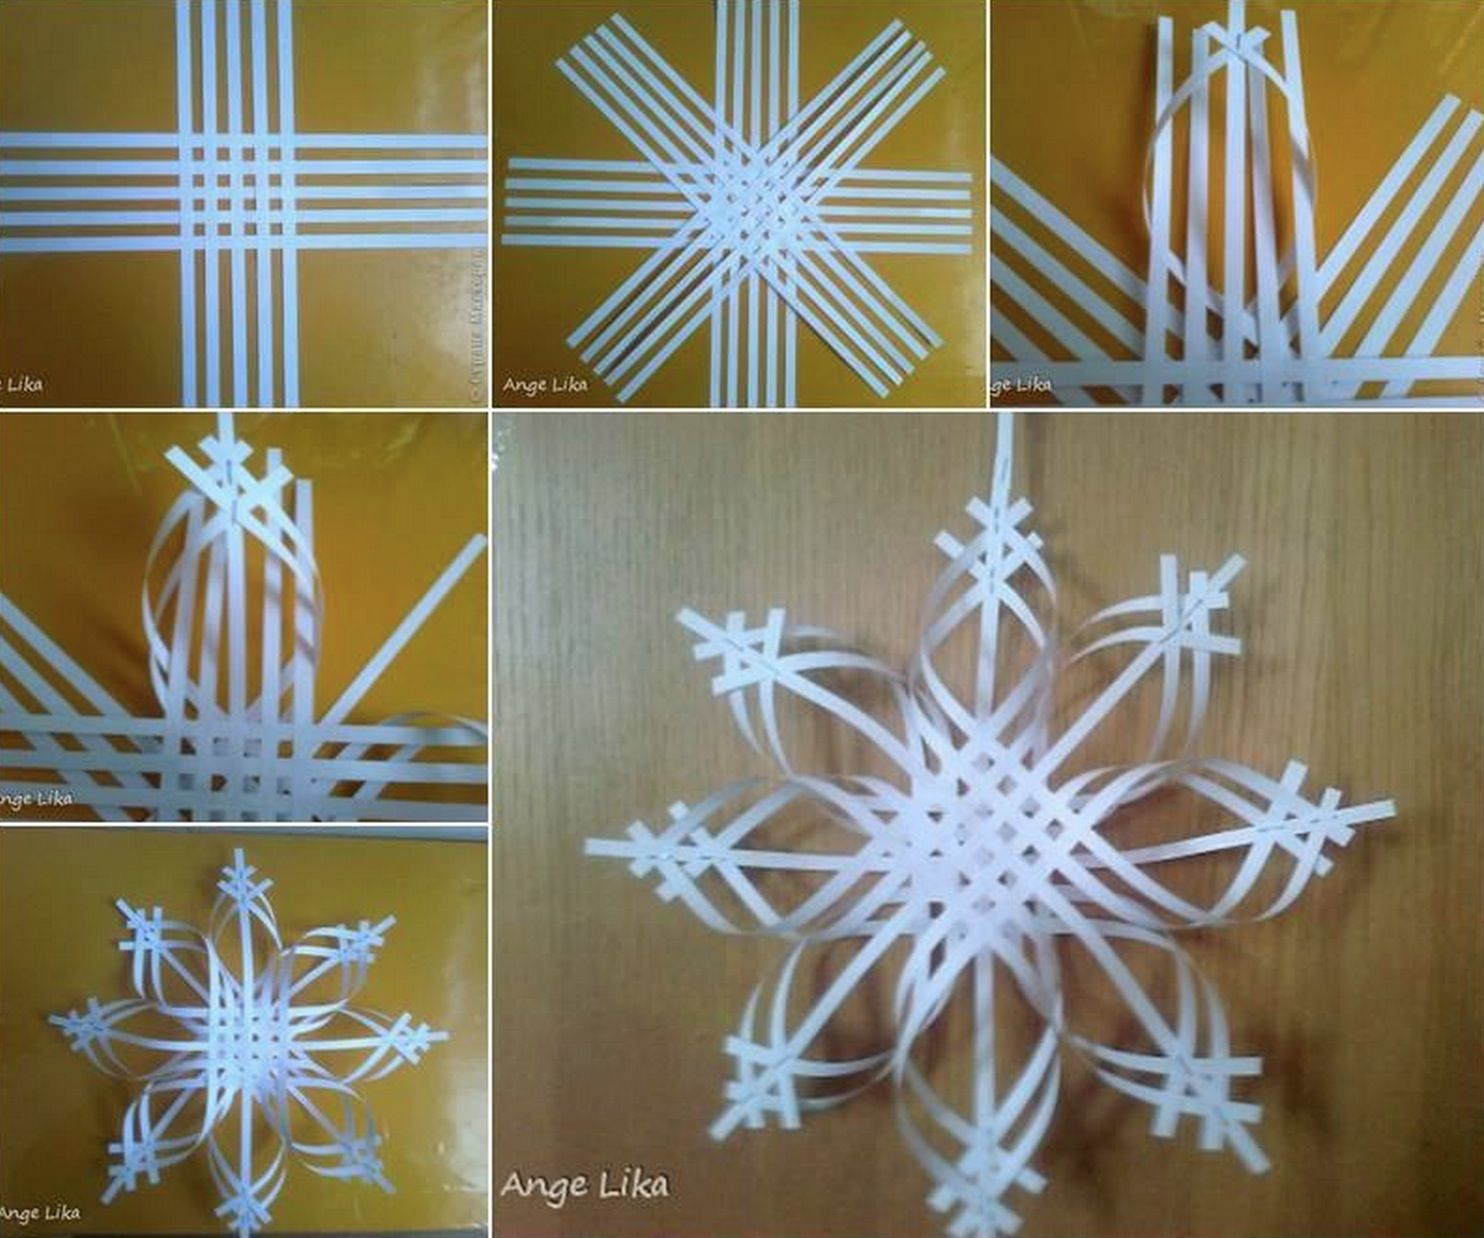 Make paper christmas decorations snowflakes - Diy Paper Snowflake Http Wonderfuldiy Com Wonderful